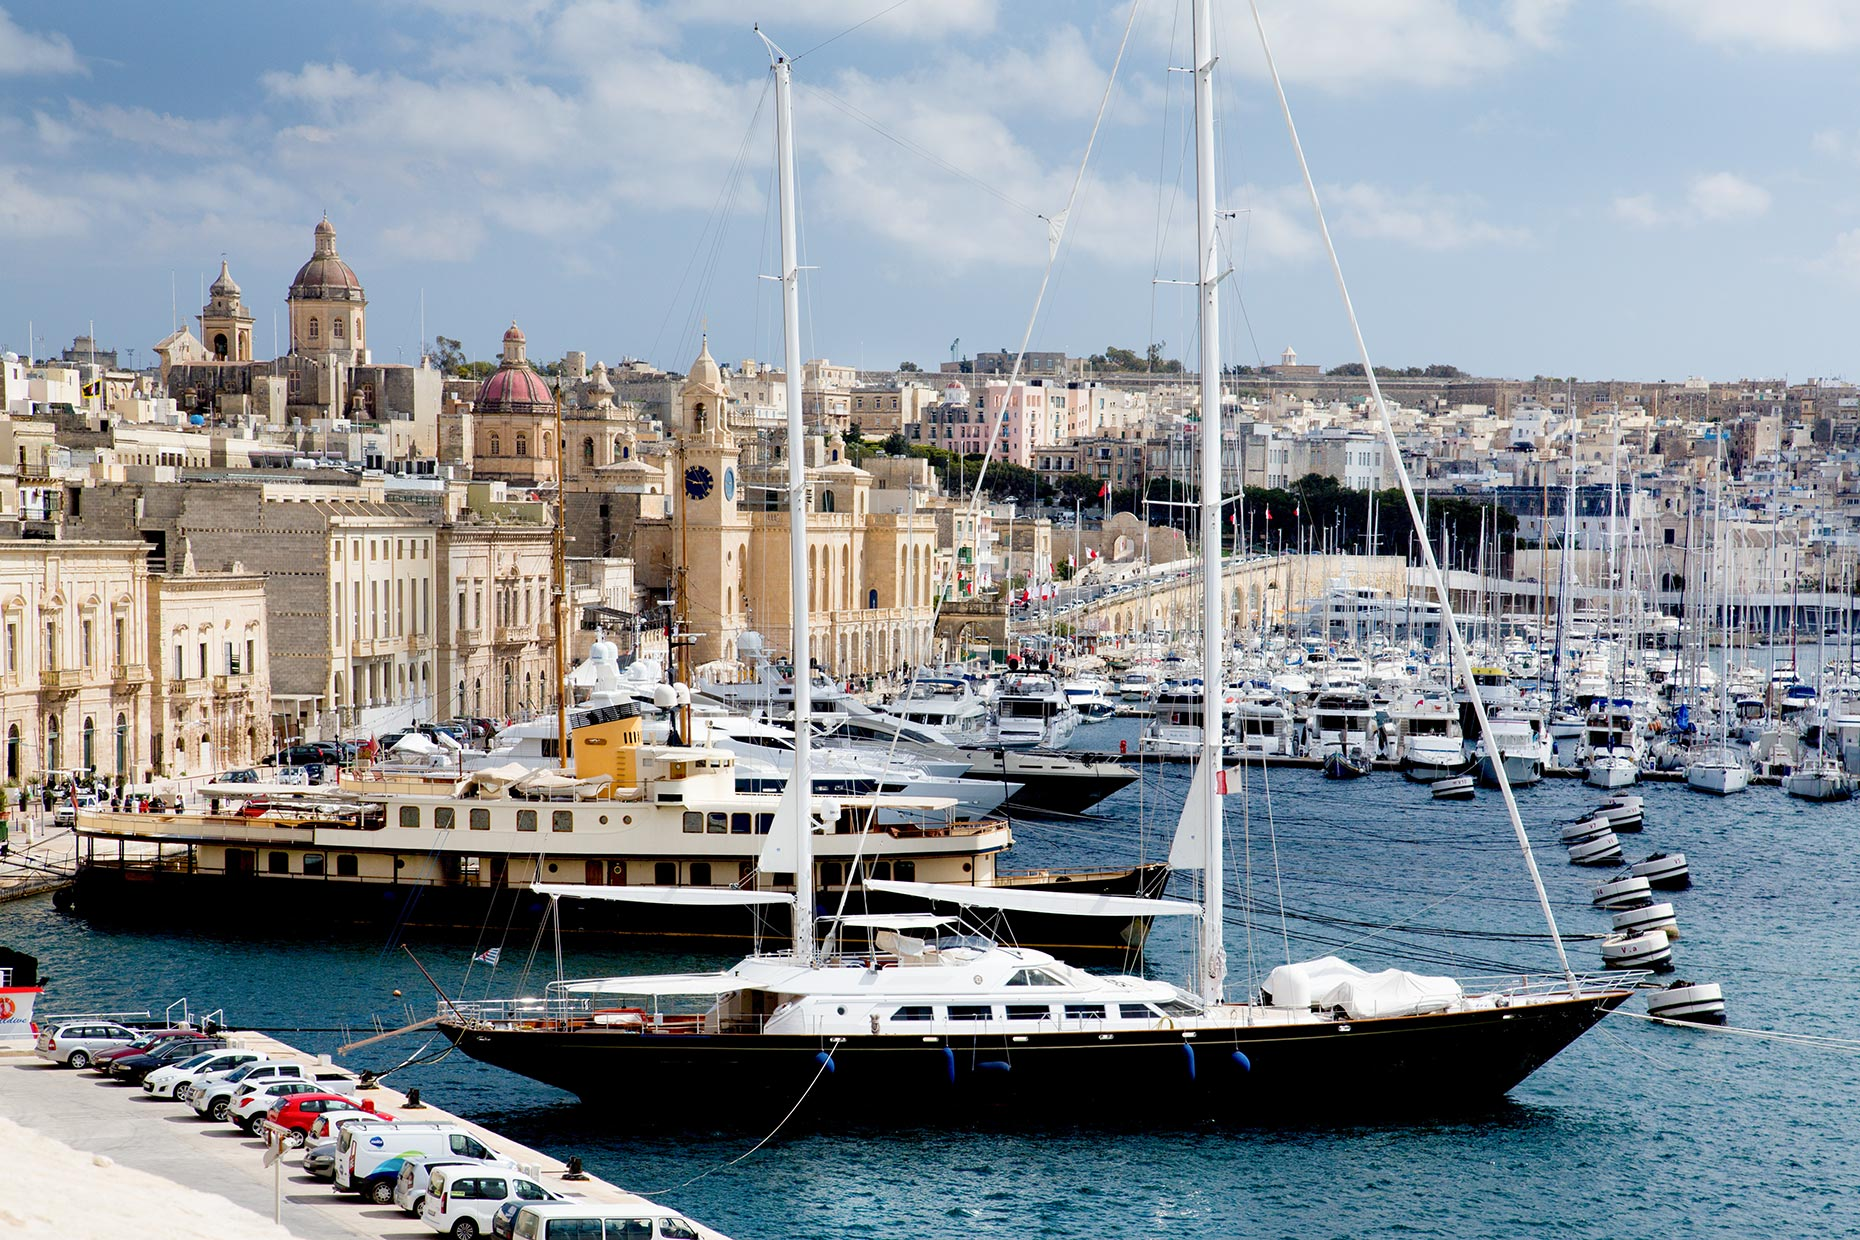 Grand-Harbor-Valetta-Malta-Yachting-Caryn-B-Davis